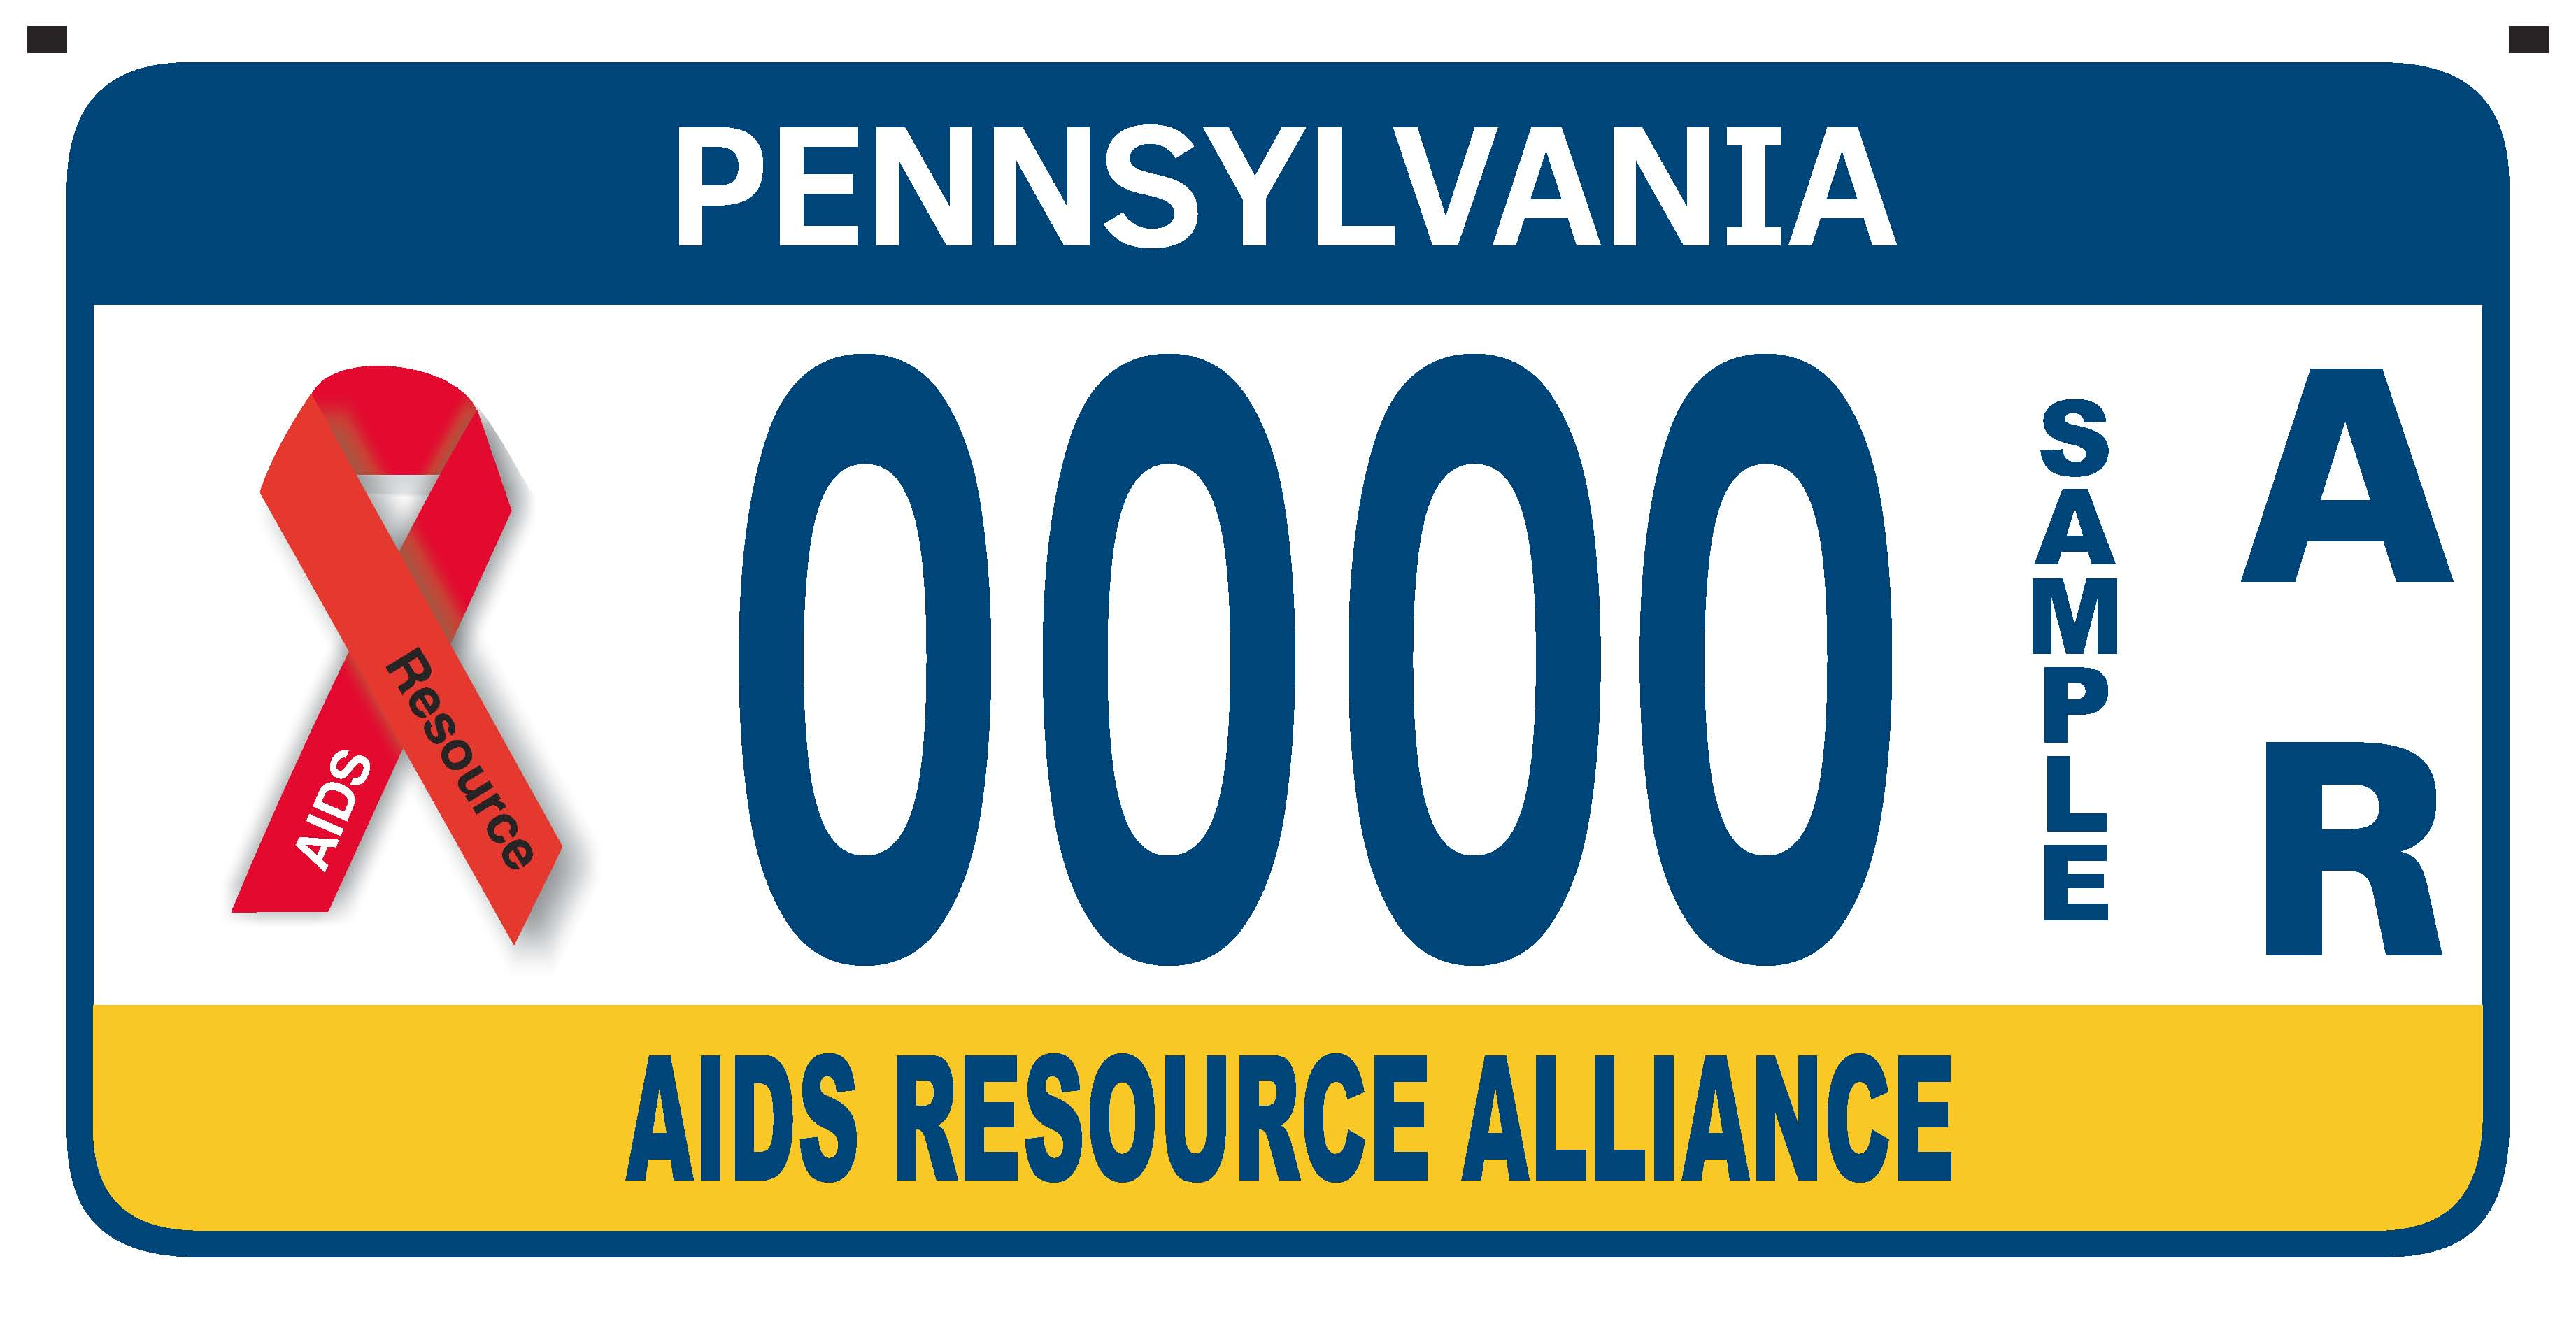 AIDS Resource Alliance